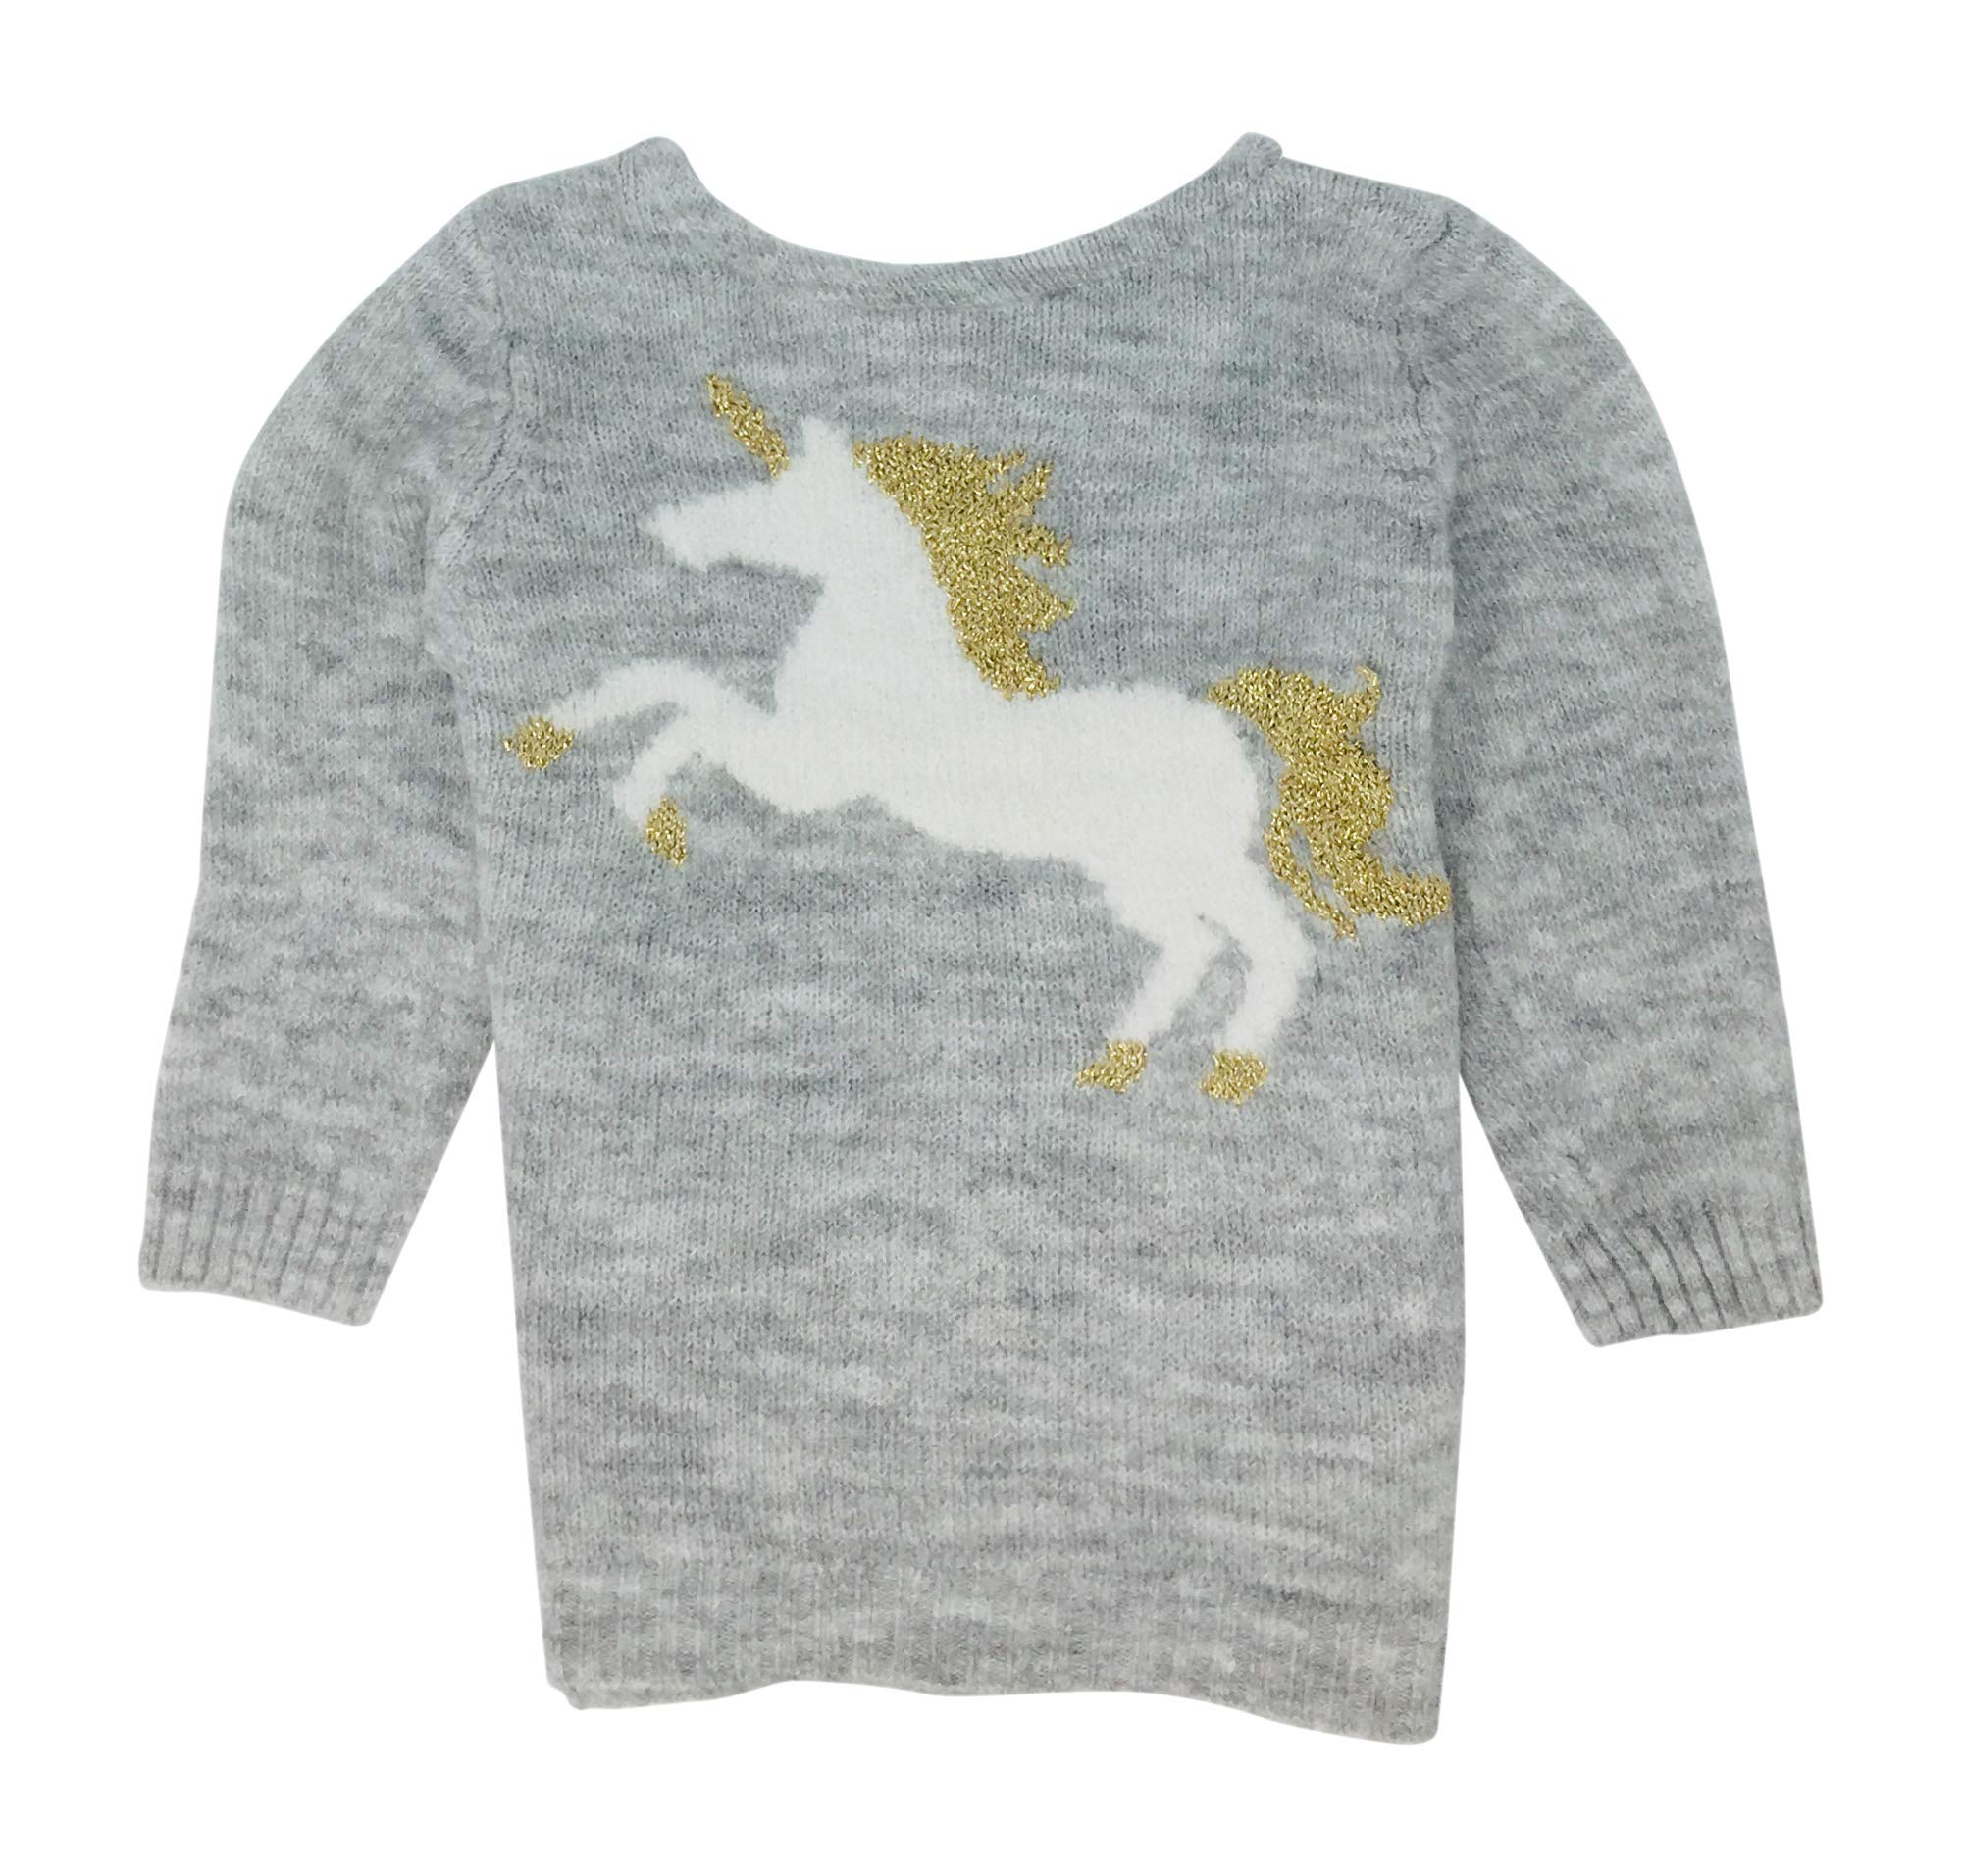 Carter's Pullover Sweater for Toddler Girls (Unicorn, 2T) by Carter's